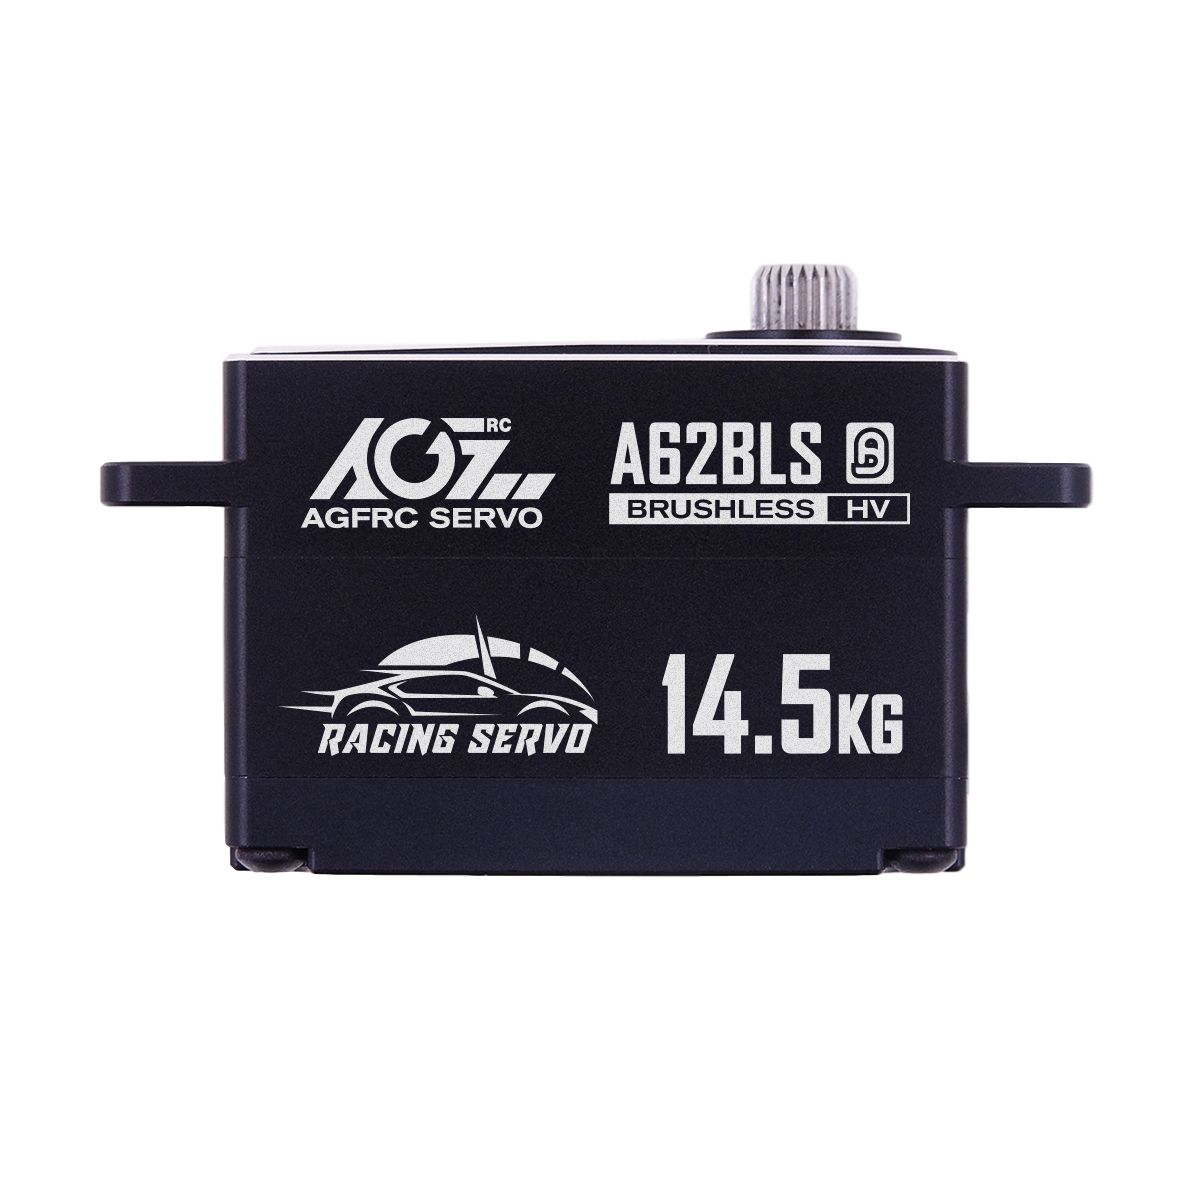 A62BLS 14.5KG Low Profile Brushless Servo For 1/10 RC Drifting